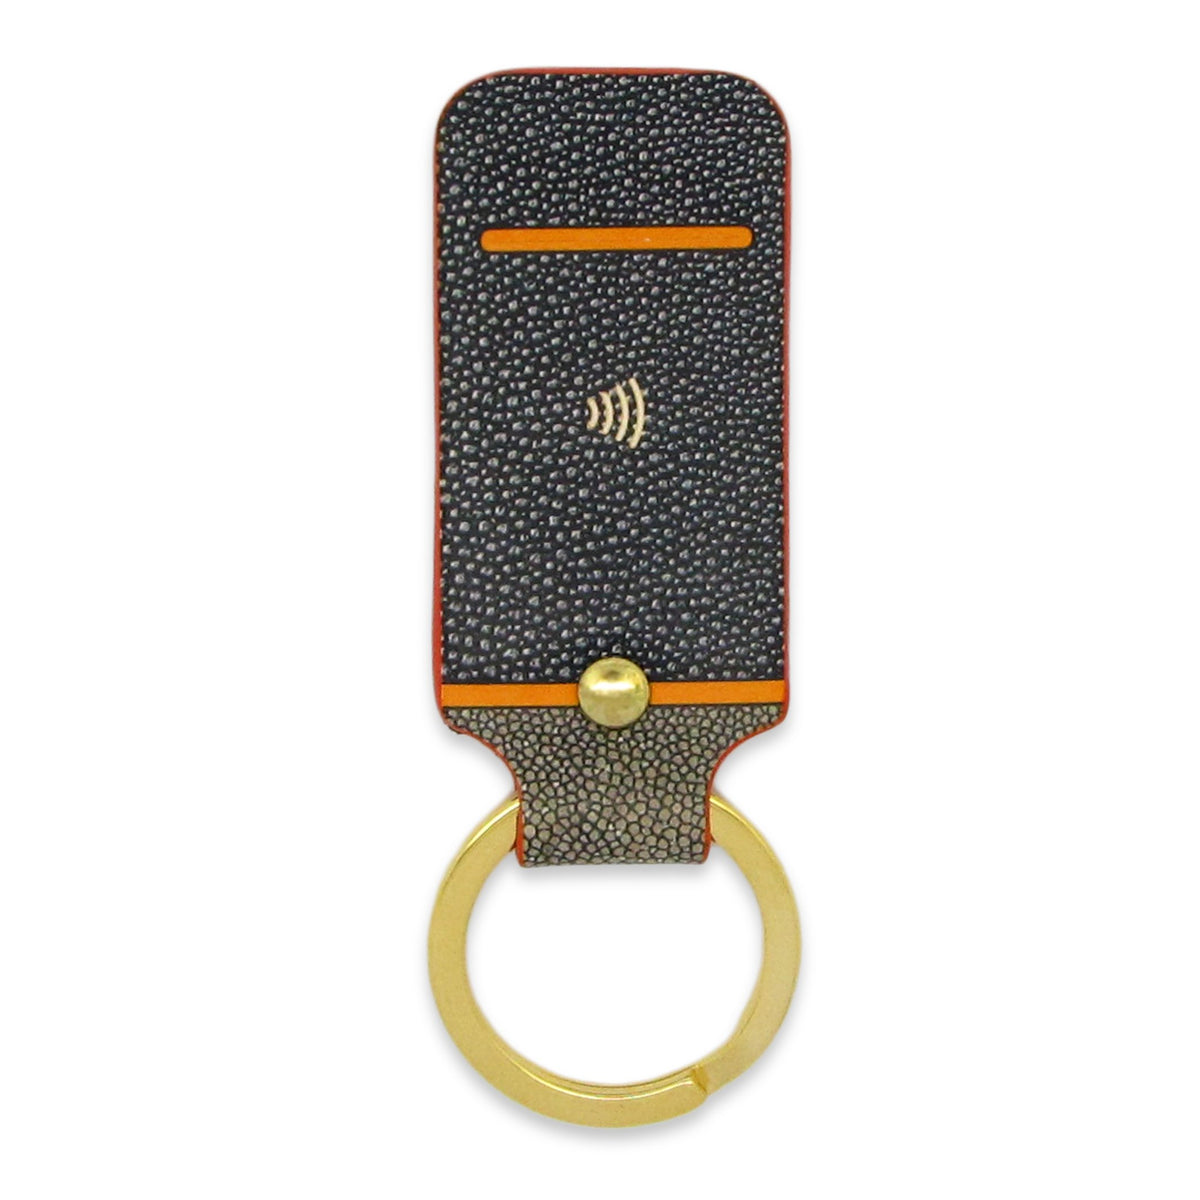 Leather Contactless Payment Key Fob - Ray Skin Tovi Sorga